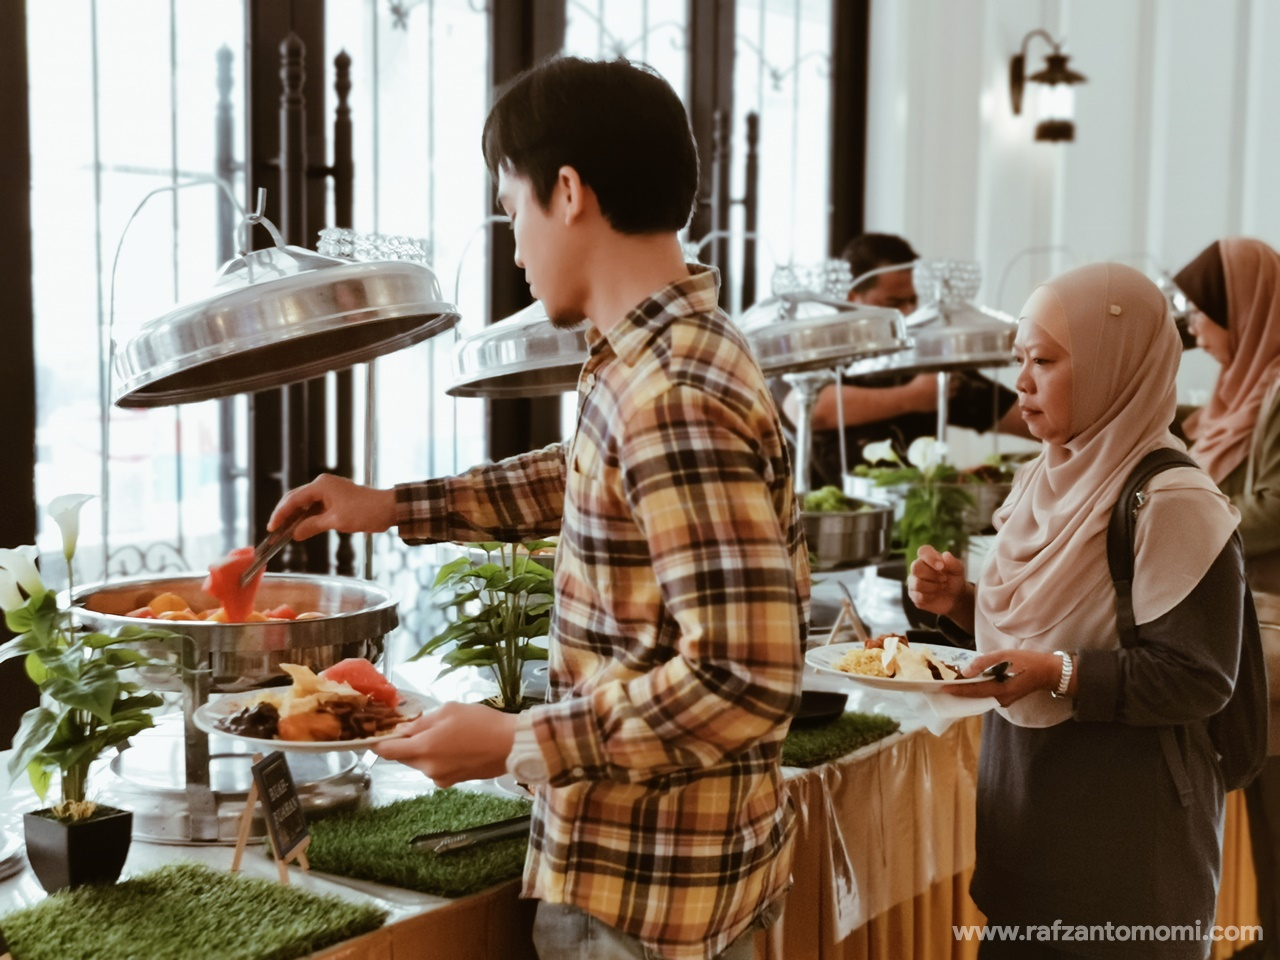 Food Tasting & Open Day Ambassador Putrajaya - 22 September 2019